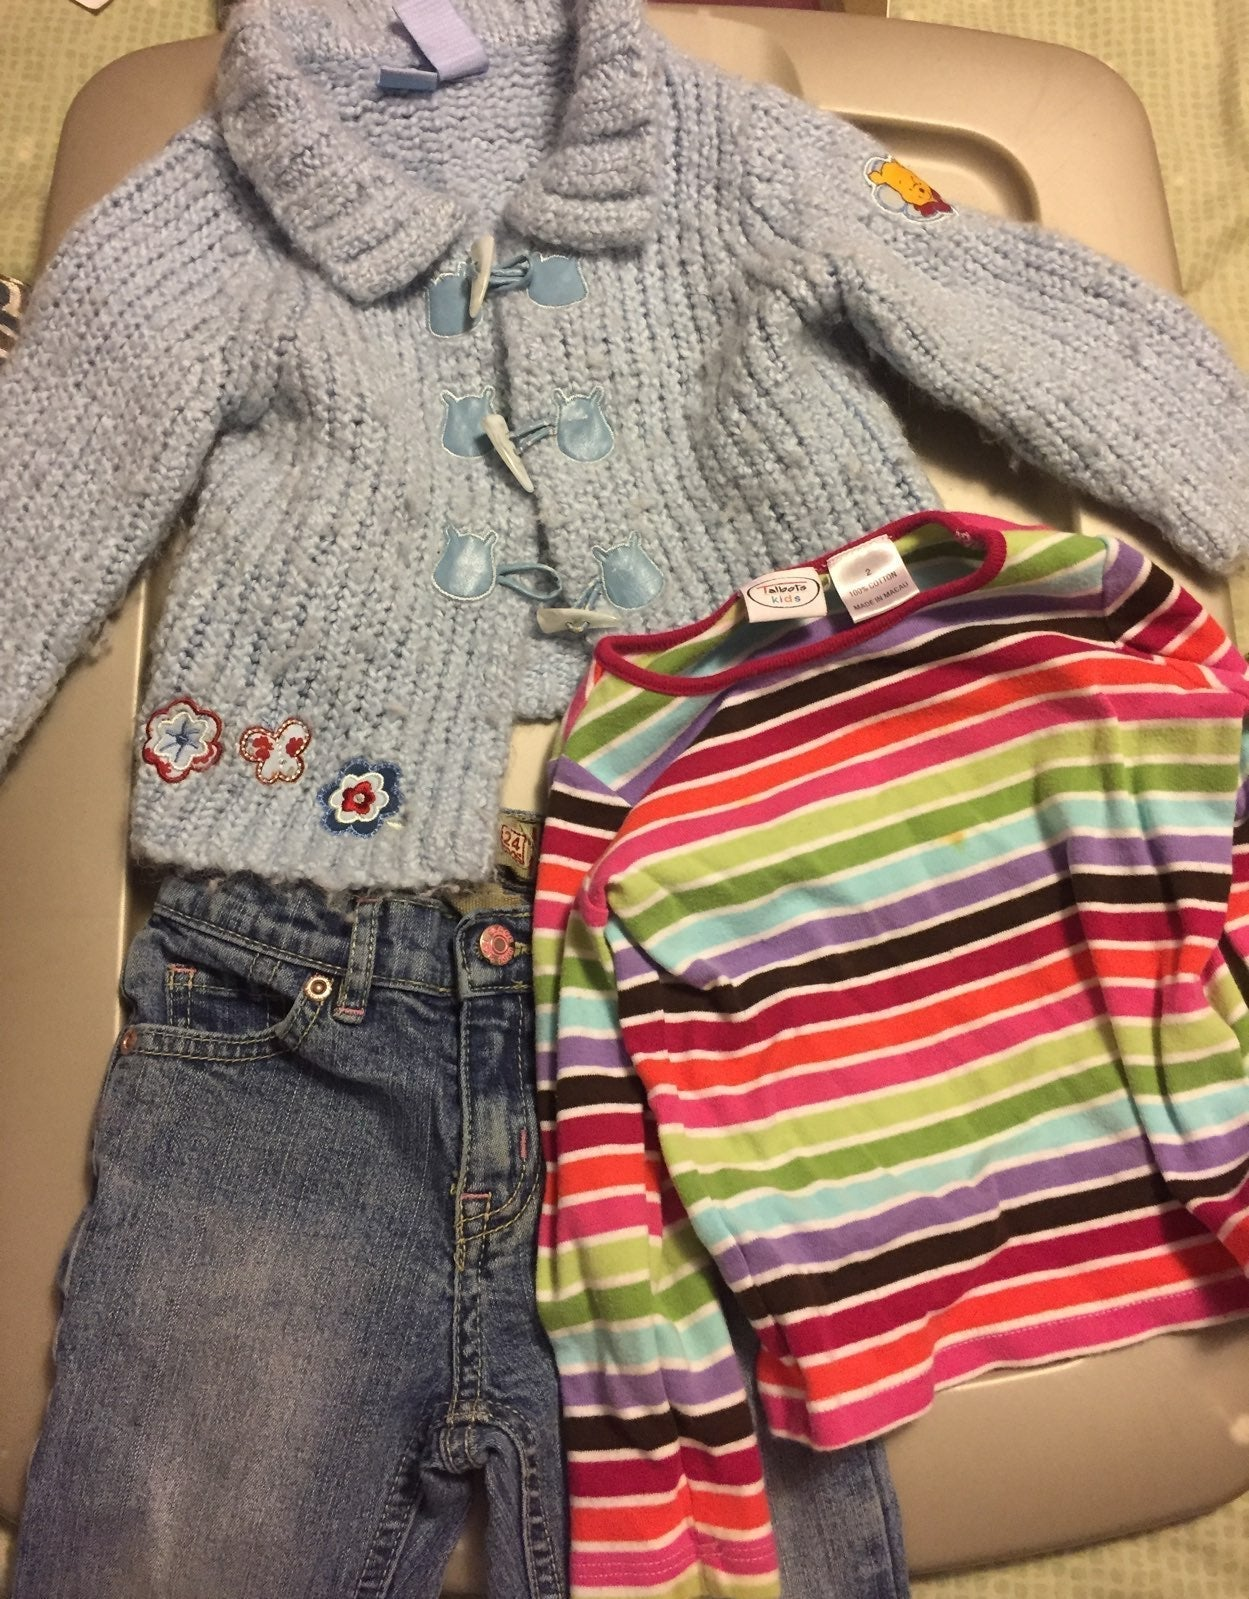 Girls 24 months outfit